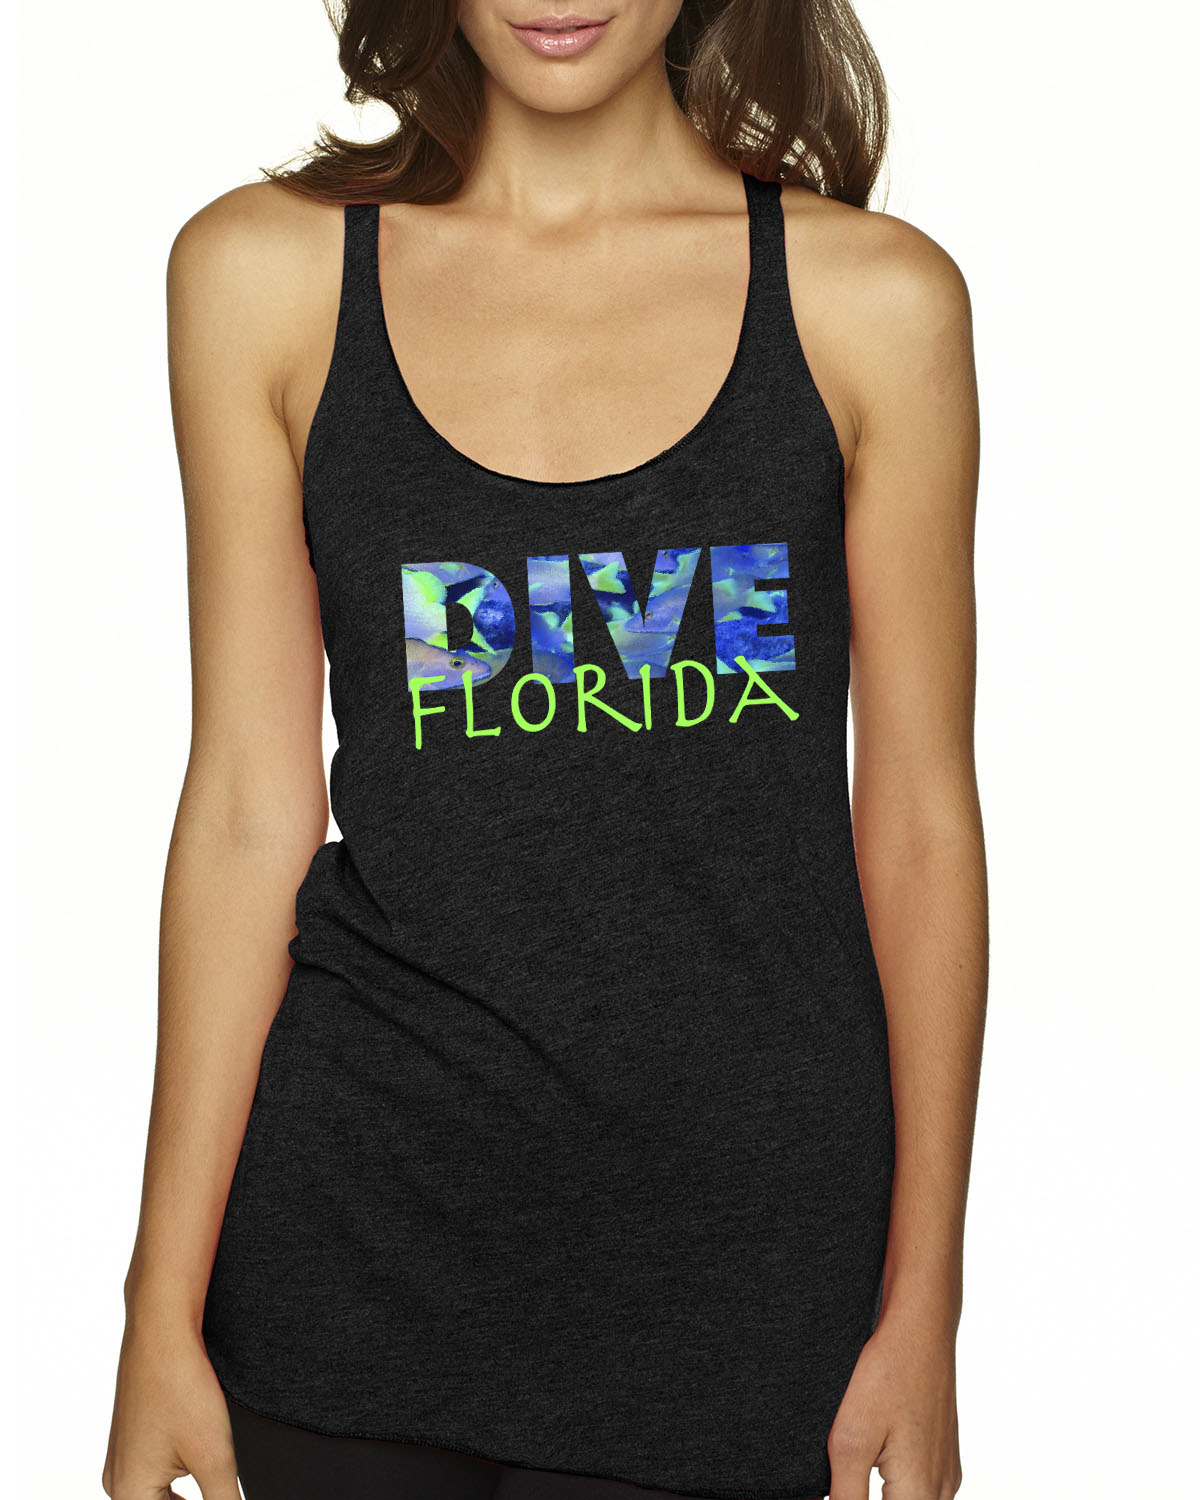 Racer-Back DIVE Florida Tank Top (Vintage Black)